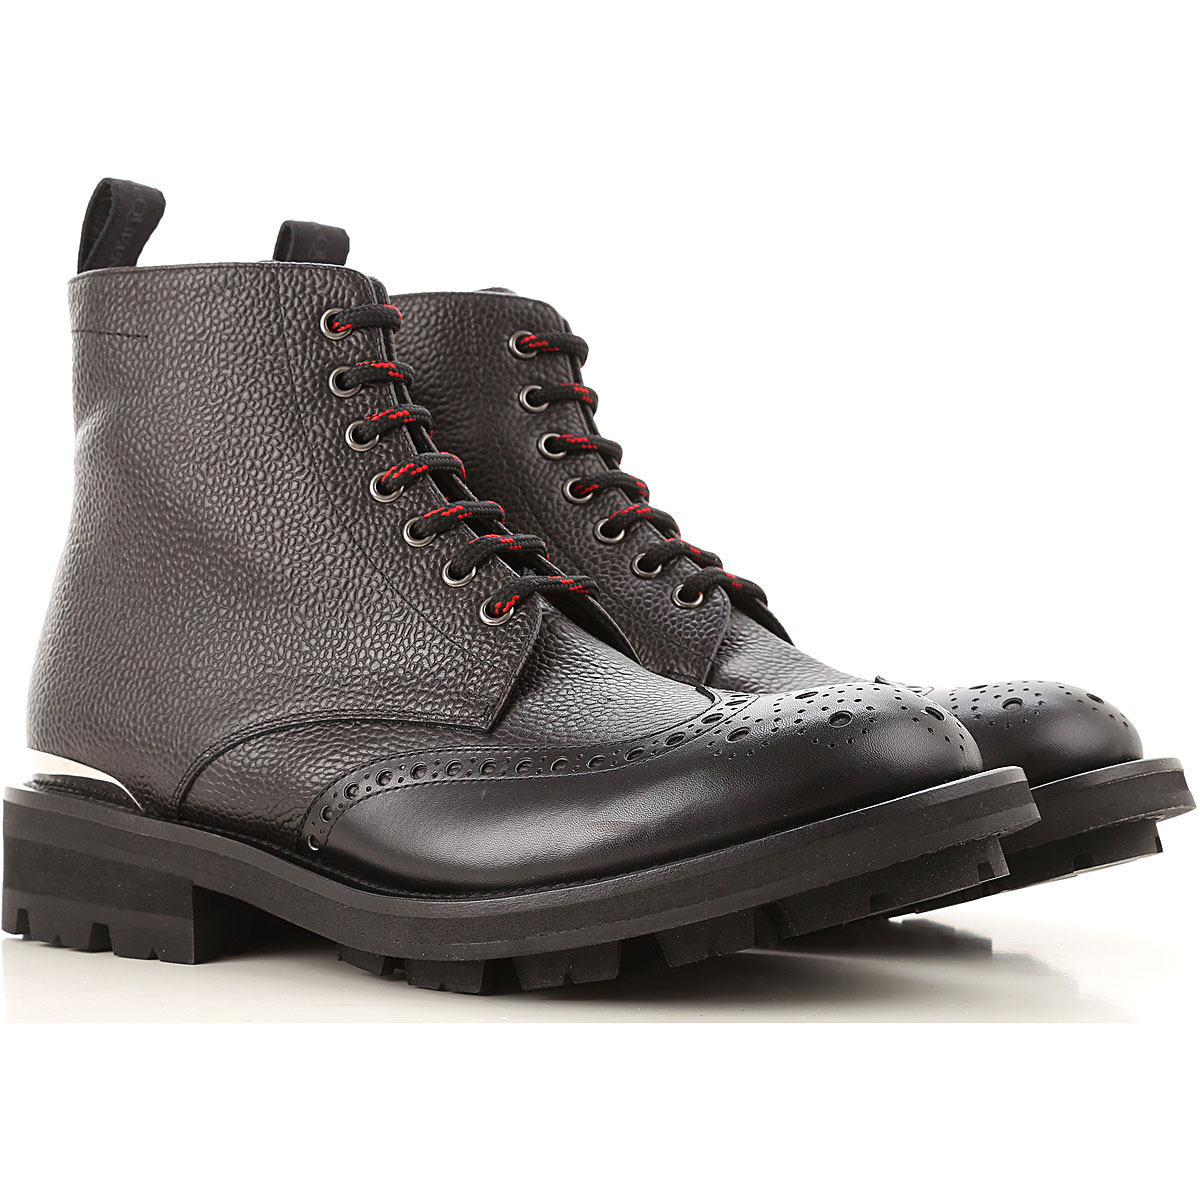 Alexander McQueen Boots for Men, Booties On Sale, Black, Crackle Leather, 2019, EUR 39 - US 6 - UK 5 EUR 40.5 - US 7.5 - UK 6.5 EUR 40 - US 7 - UK 6 E